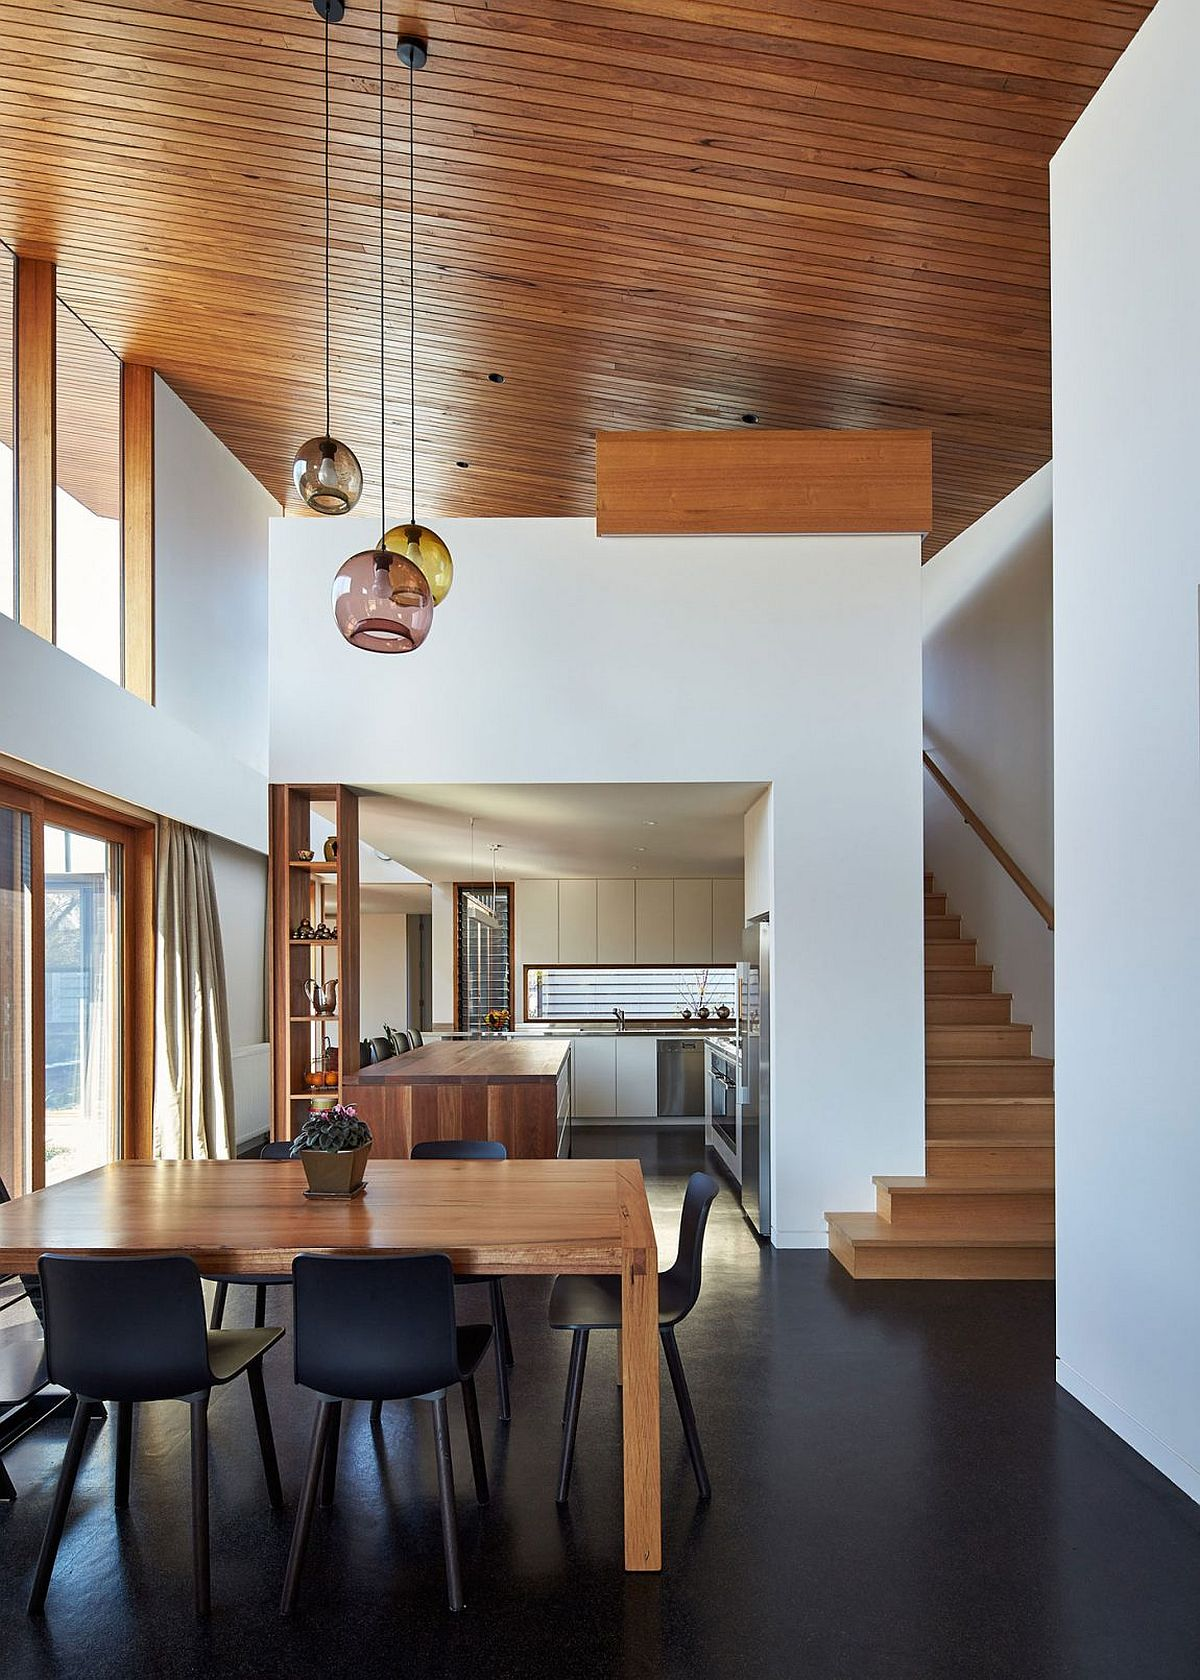 Kitchen area of the family home delineated from the living space